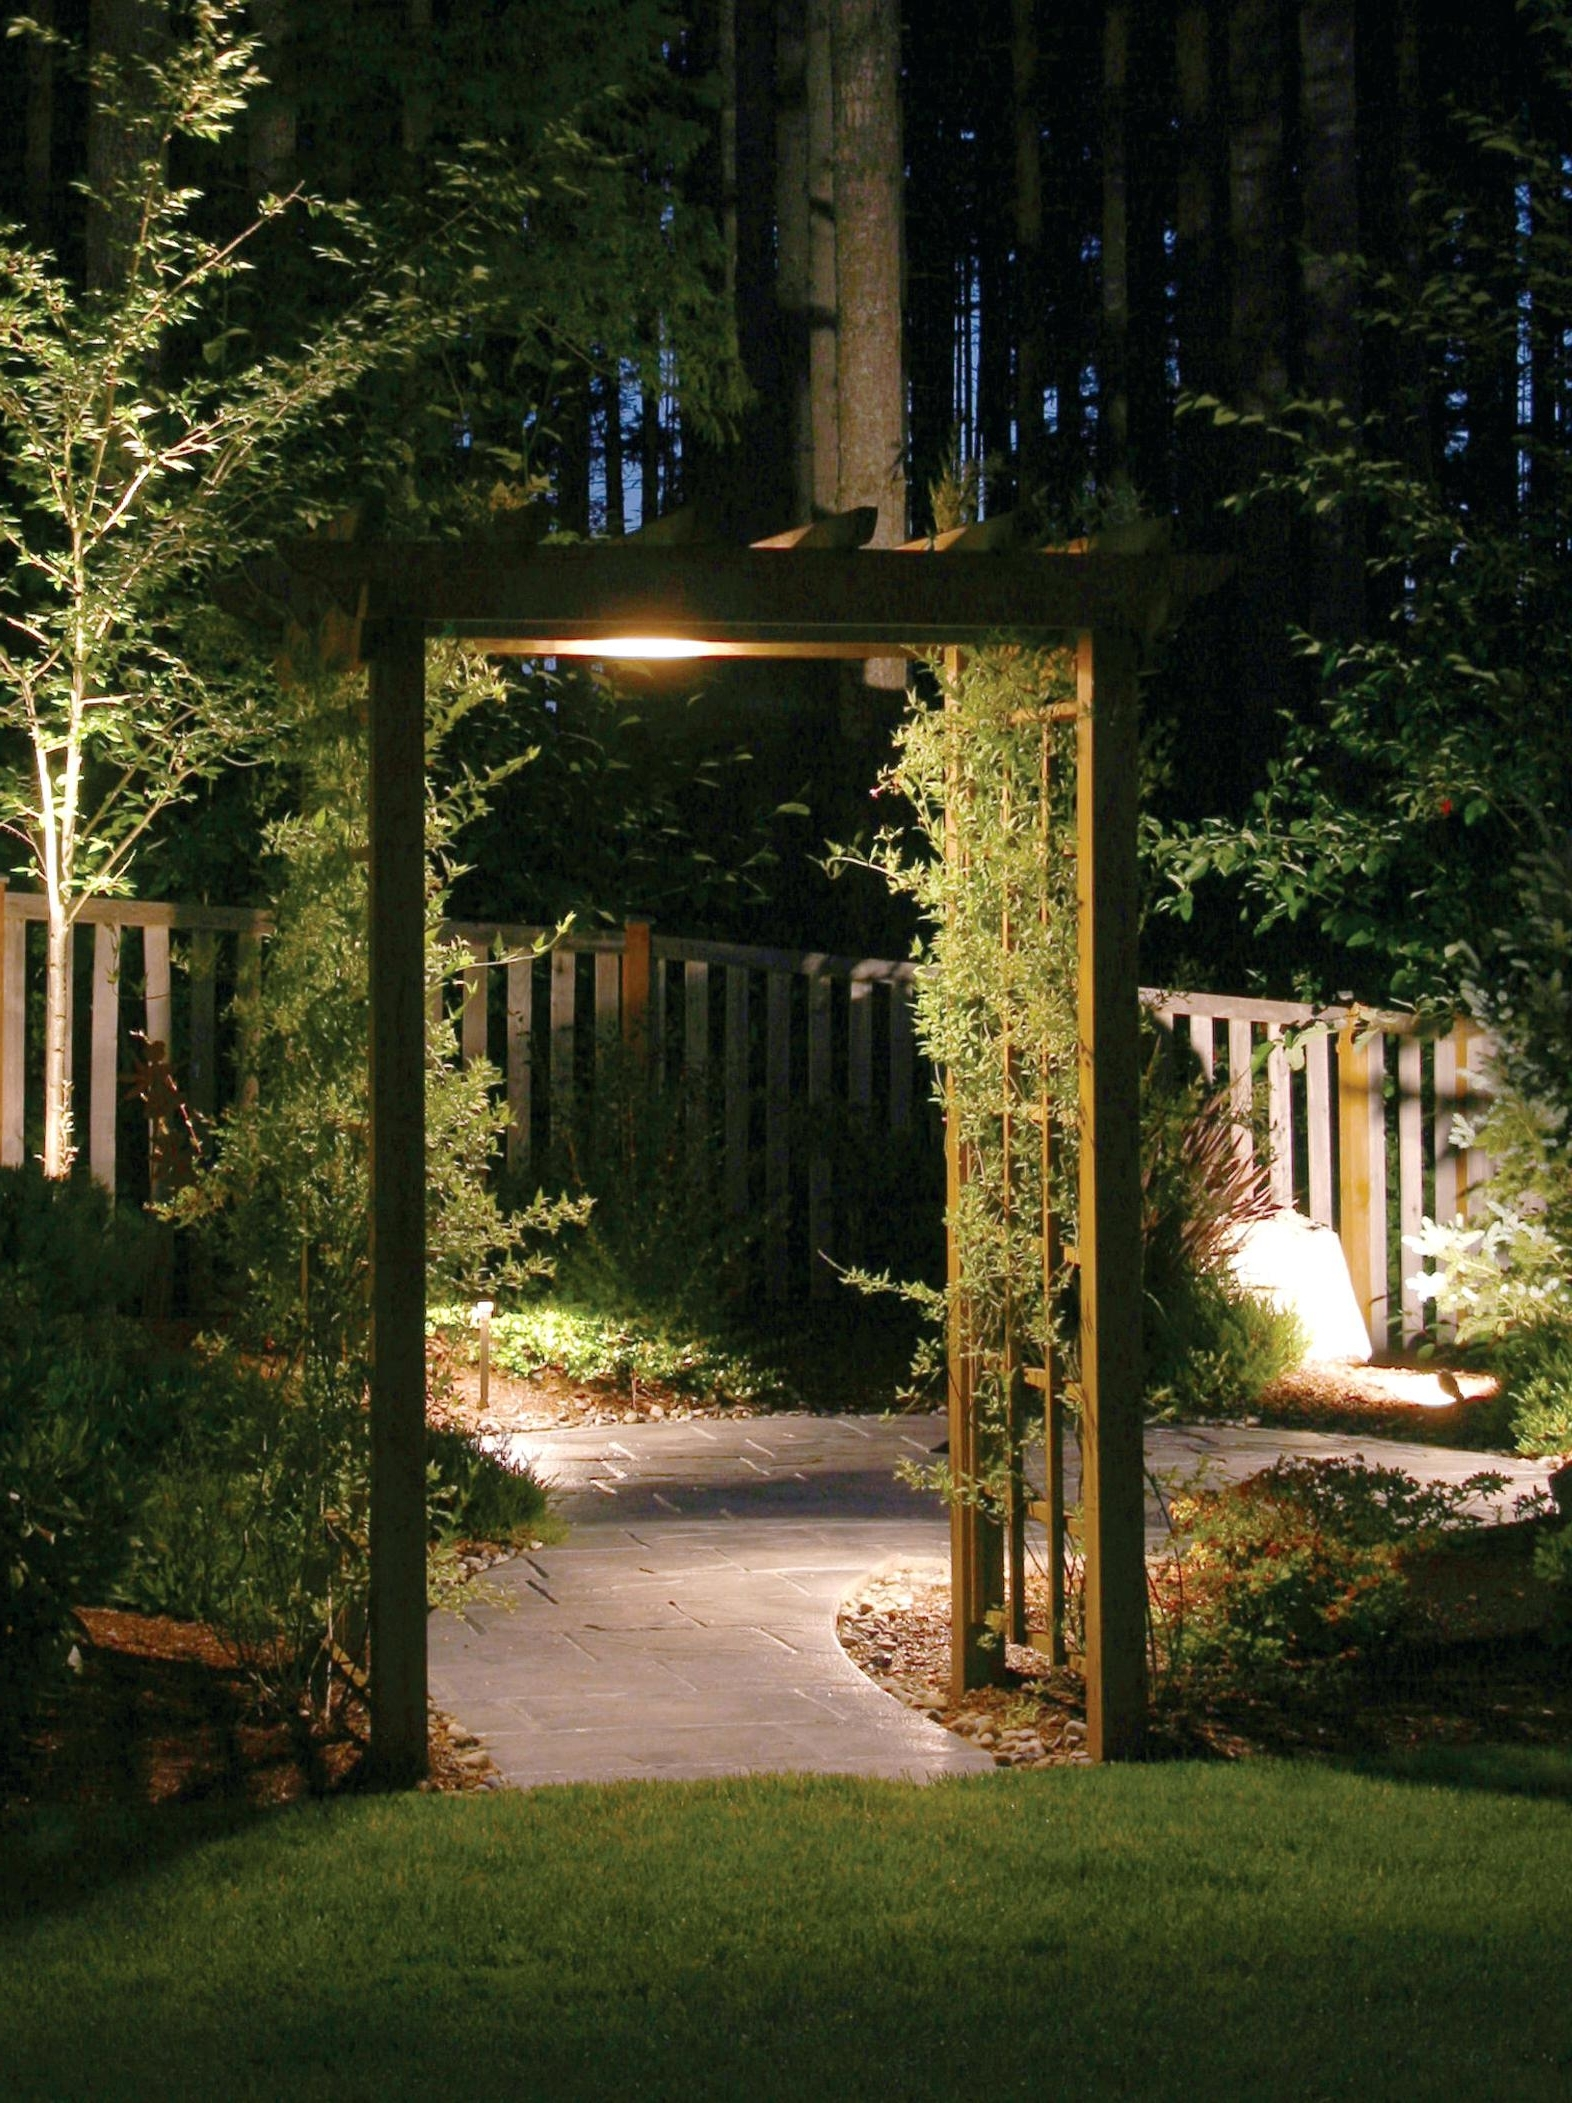 Newest Cheap Outdoor Lights String Argos Lighting For Weddings Throughout Outdoor Lanterns At Argos (View 10 of 20)